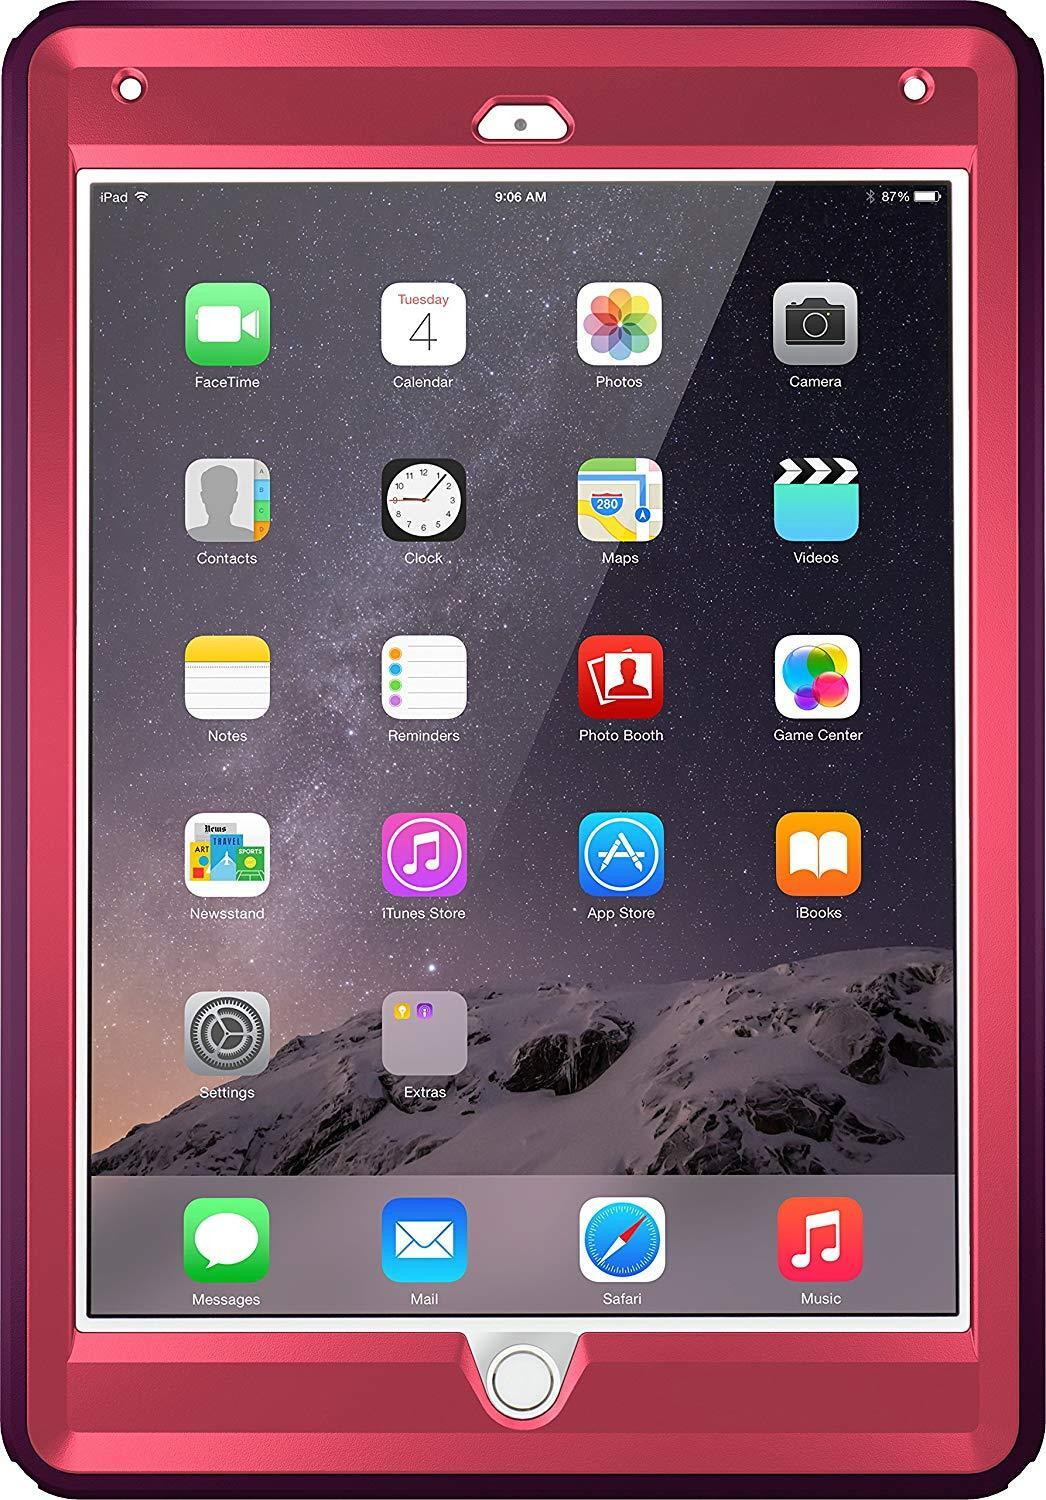 OtterBox DEFENDER SERIES Case for iPad Air 2 - CRUSHED DAMSON